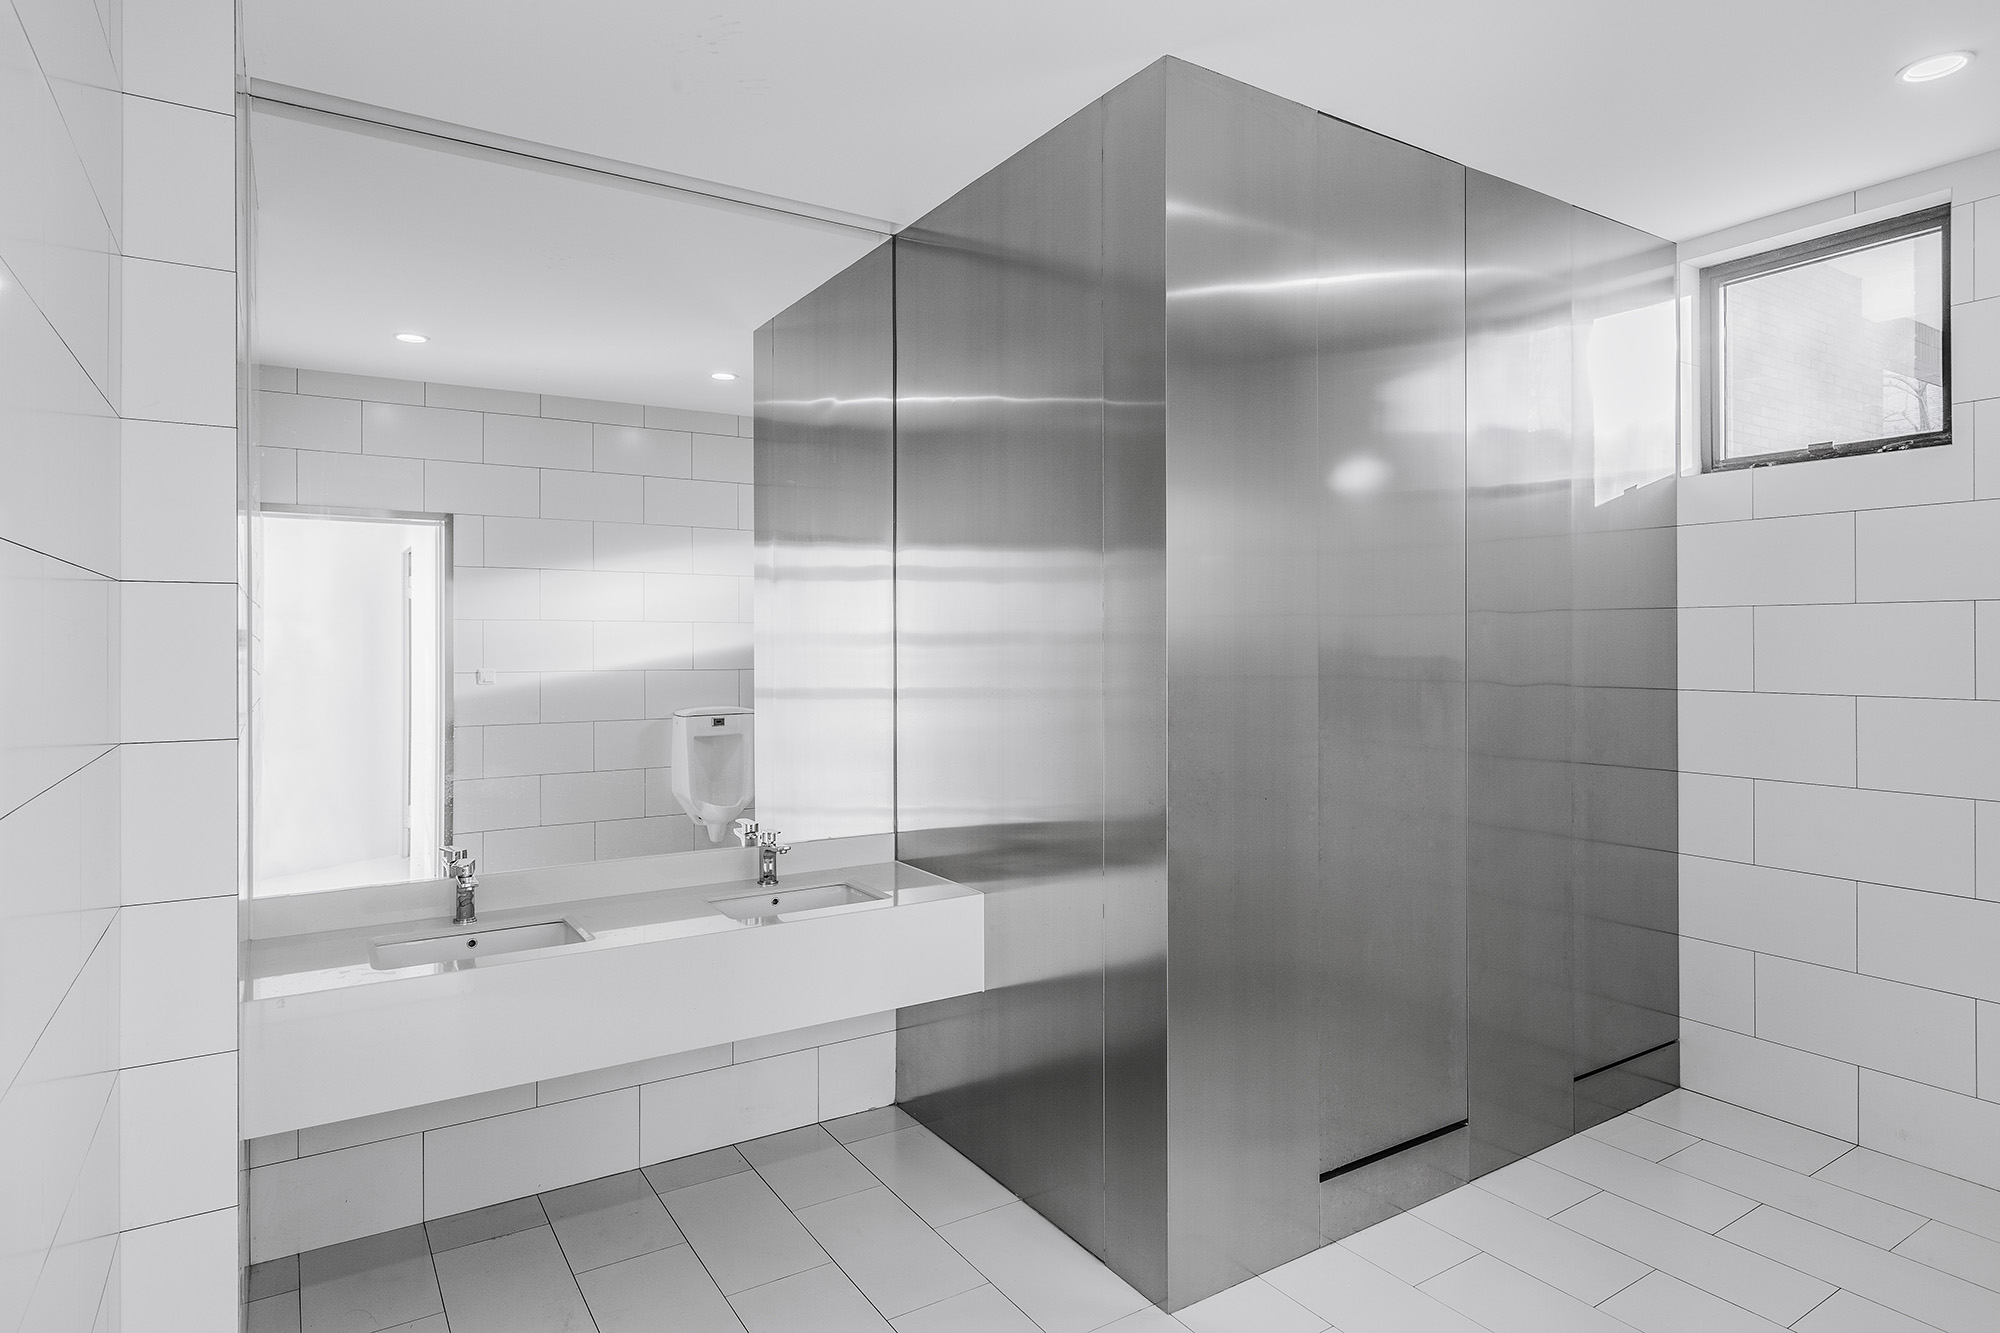 Bathrooms with white and metal tiles